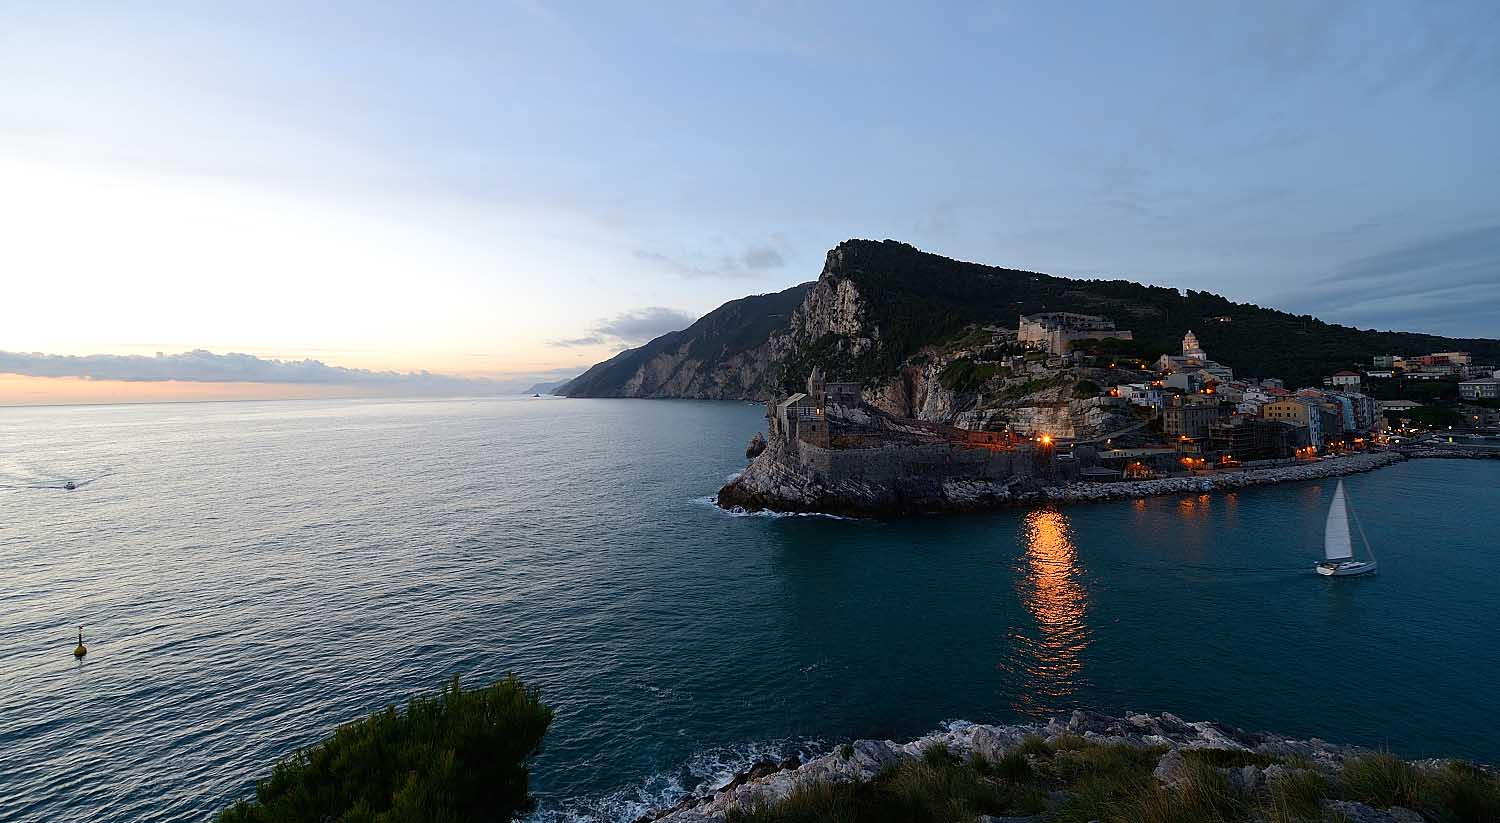 Photography Workshop in Portovenere Liguria PixCube.it